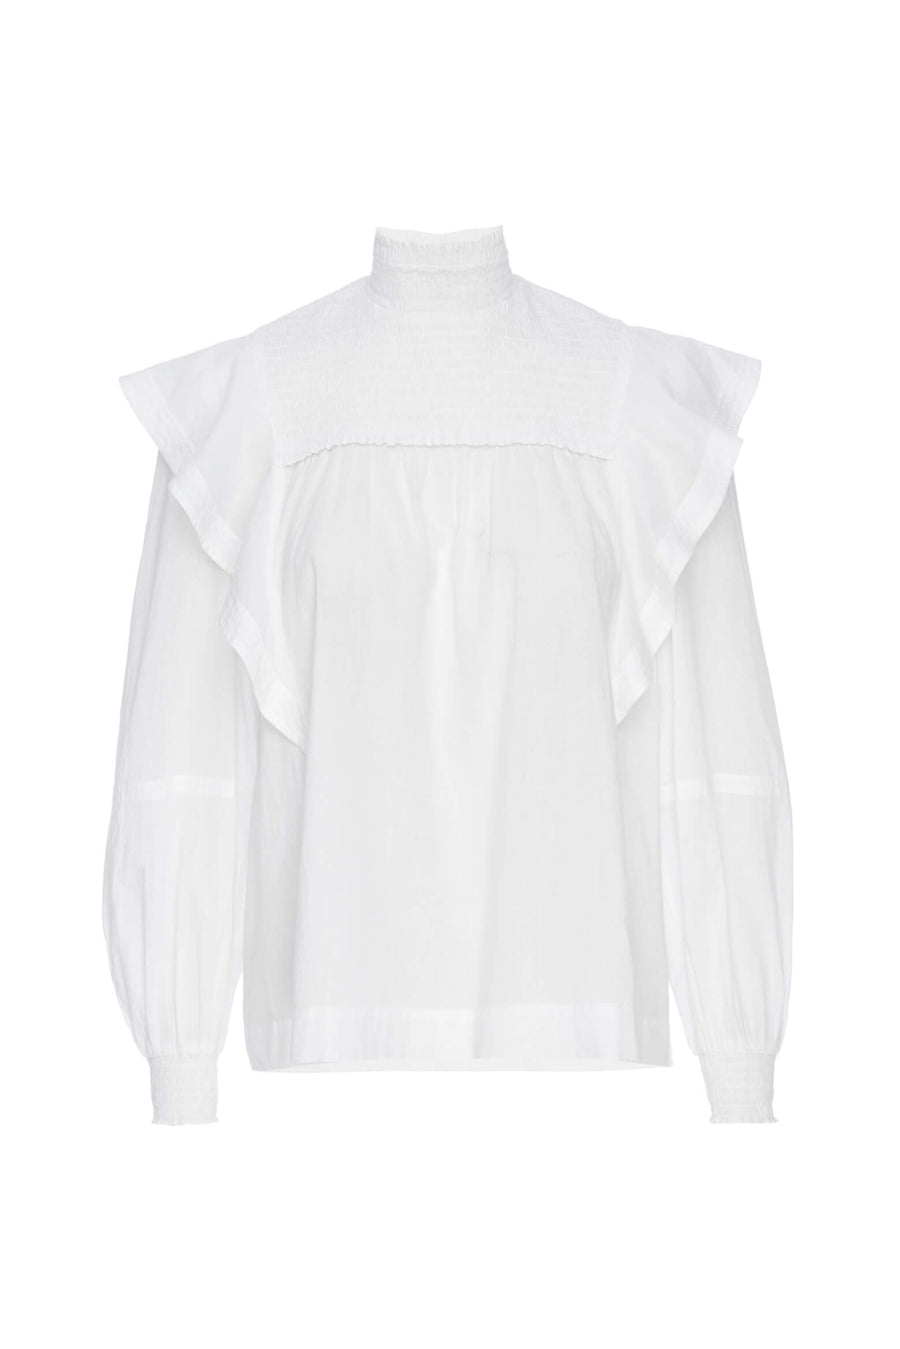 A.L.C Jillian Top from The New Trend